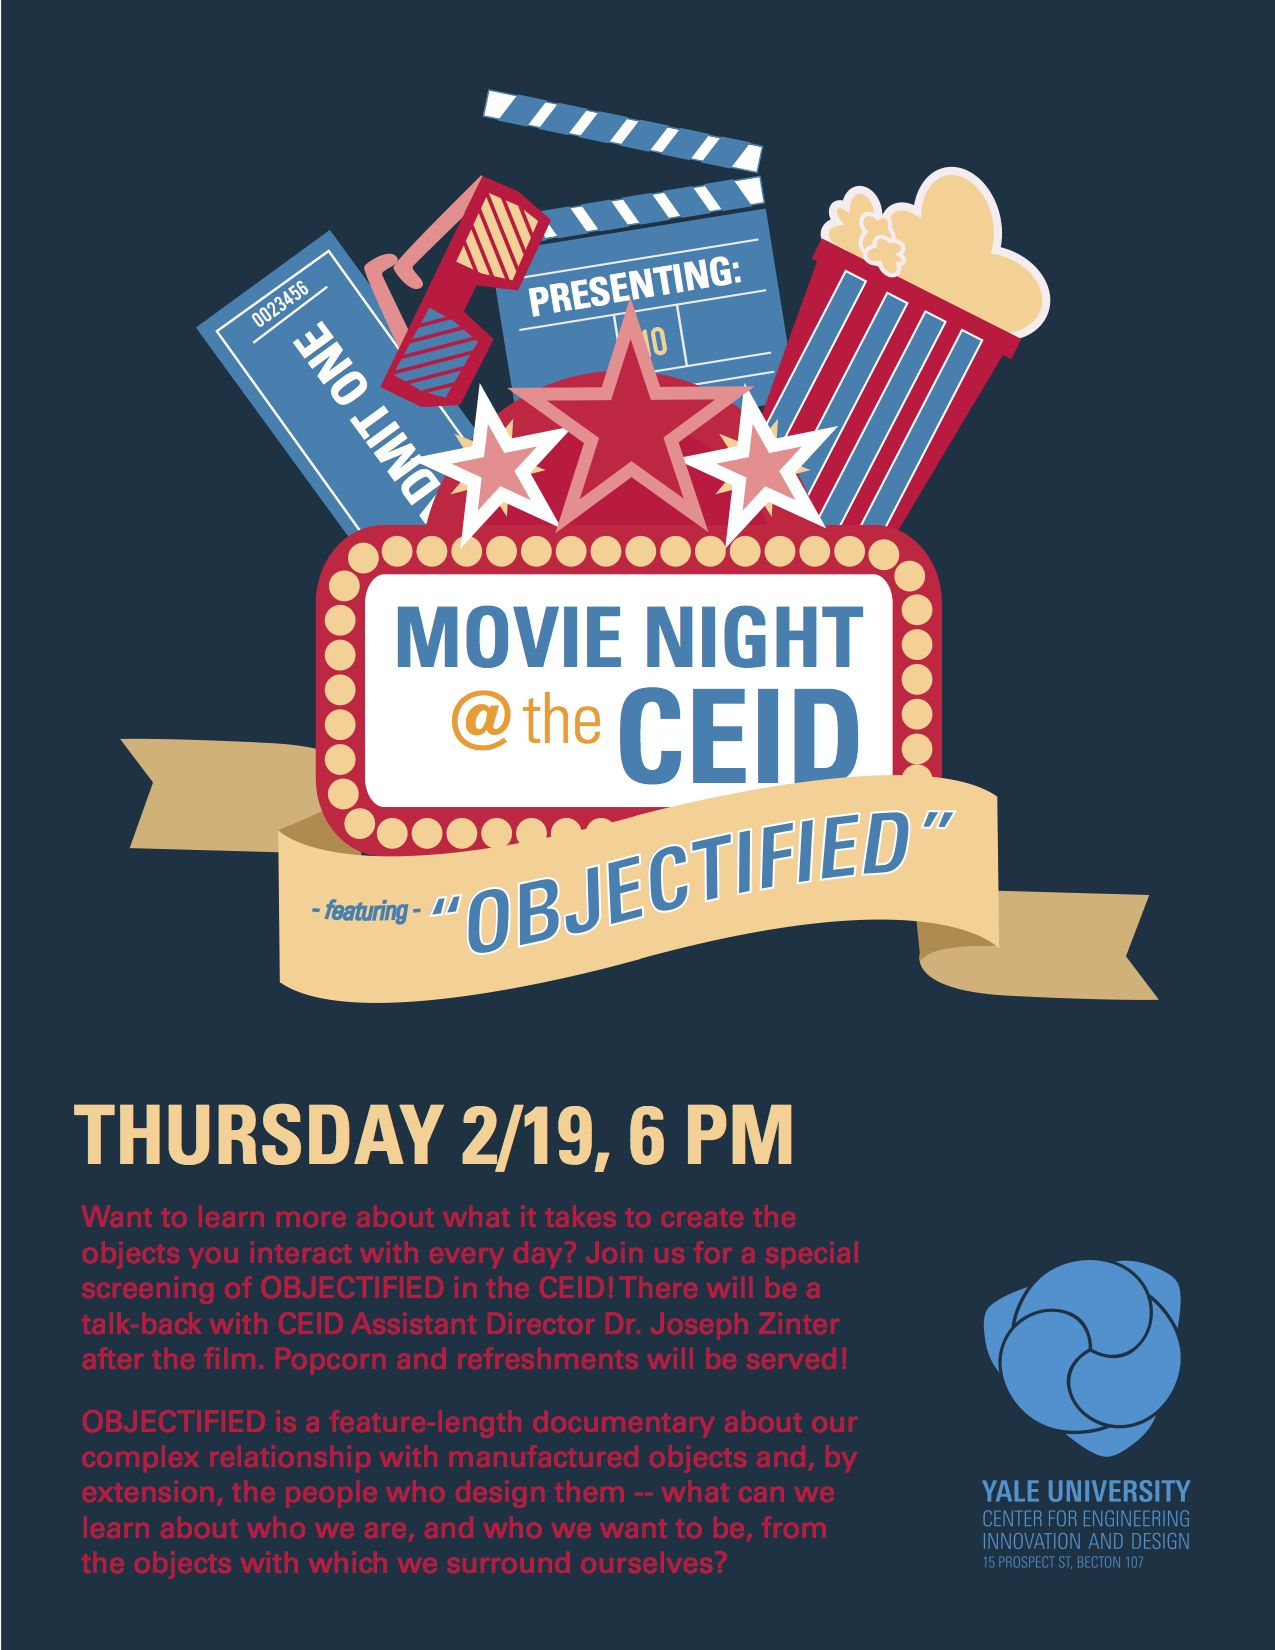 "Want to learn more about what it takes to create the objects you interact with every day? Join us for a special screening of Objectified in the CEID! There will be a talk-back with CEID Assistant Director Dr. Joseph Zinter after the film. Popcorn and refreshments will be served!  About the movie: ""Objectified is a feature-length documentary about our complex relationship with manufactured objects and, by extension, the people who design them -- what can we learn about who we are, and who we want to be, from the objects with which we surround ourselves?"""